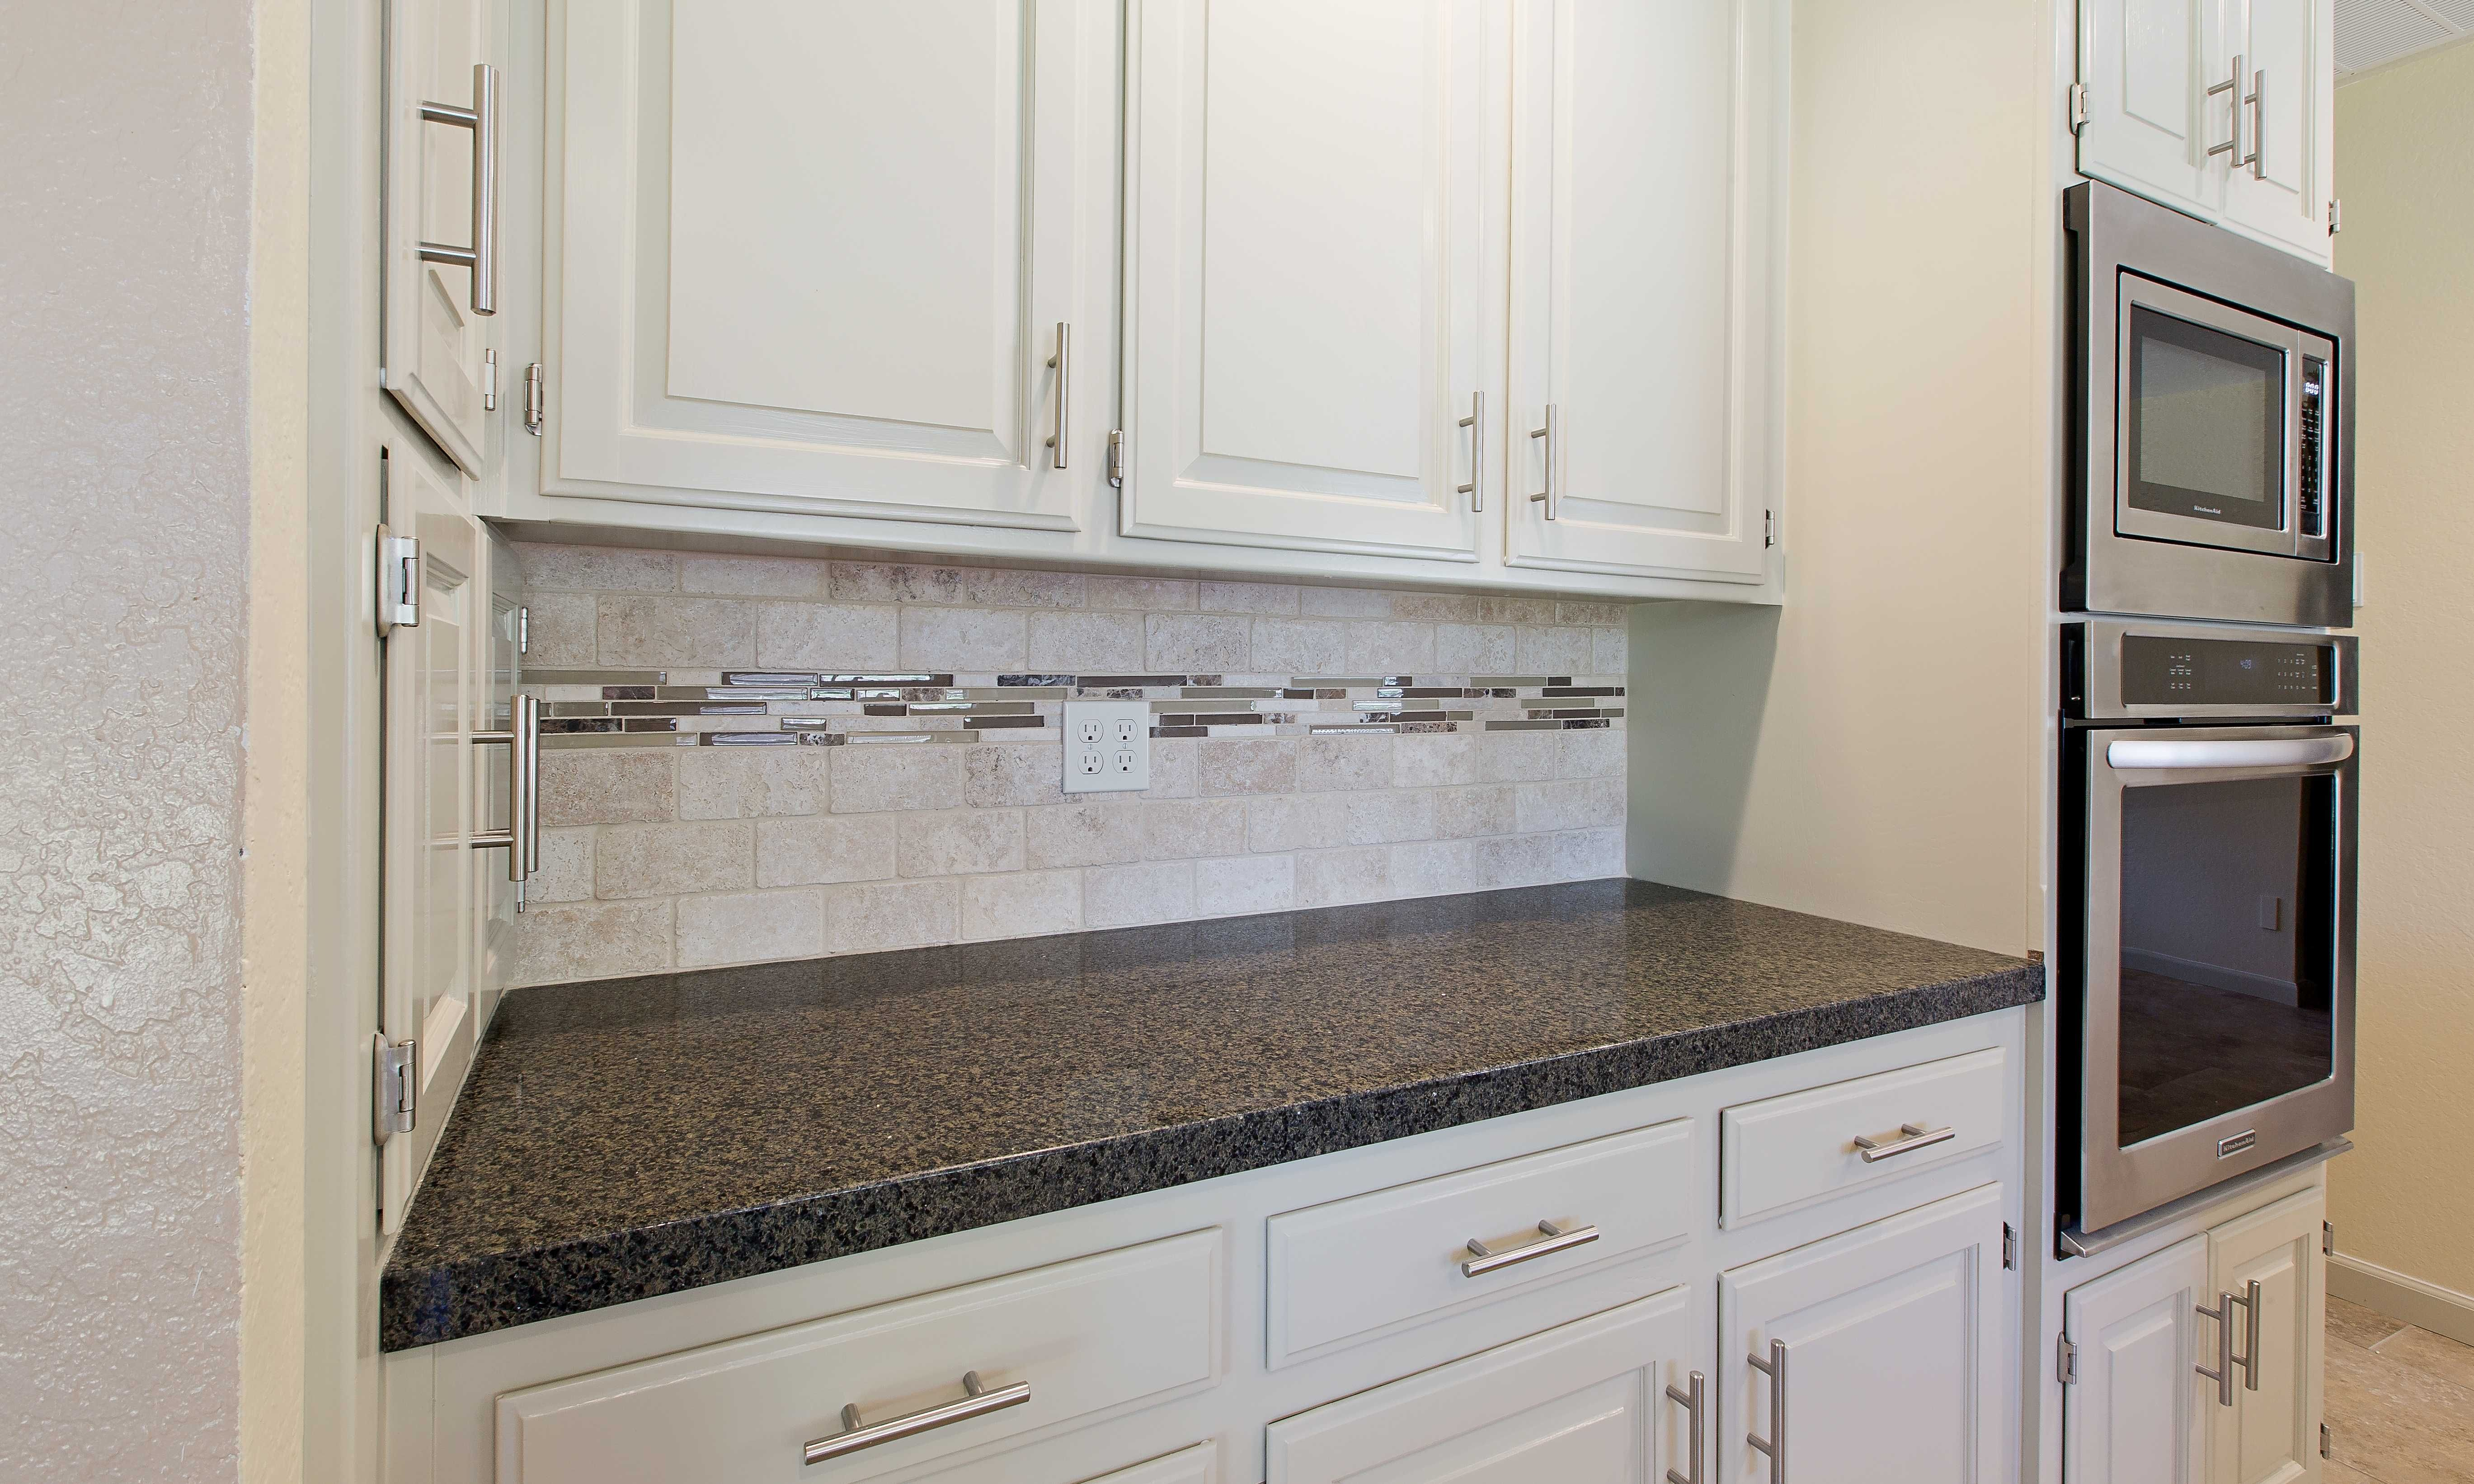 Backsplash Accent Ideas Enchanting Accent Tiles For Kitchen Backsplash And Subway